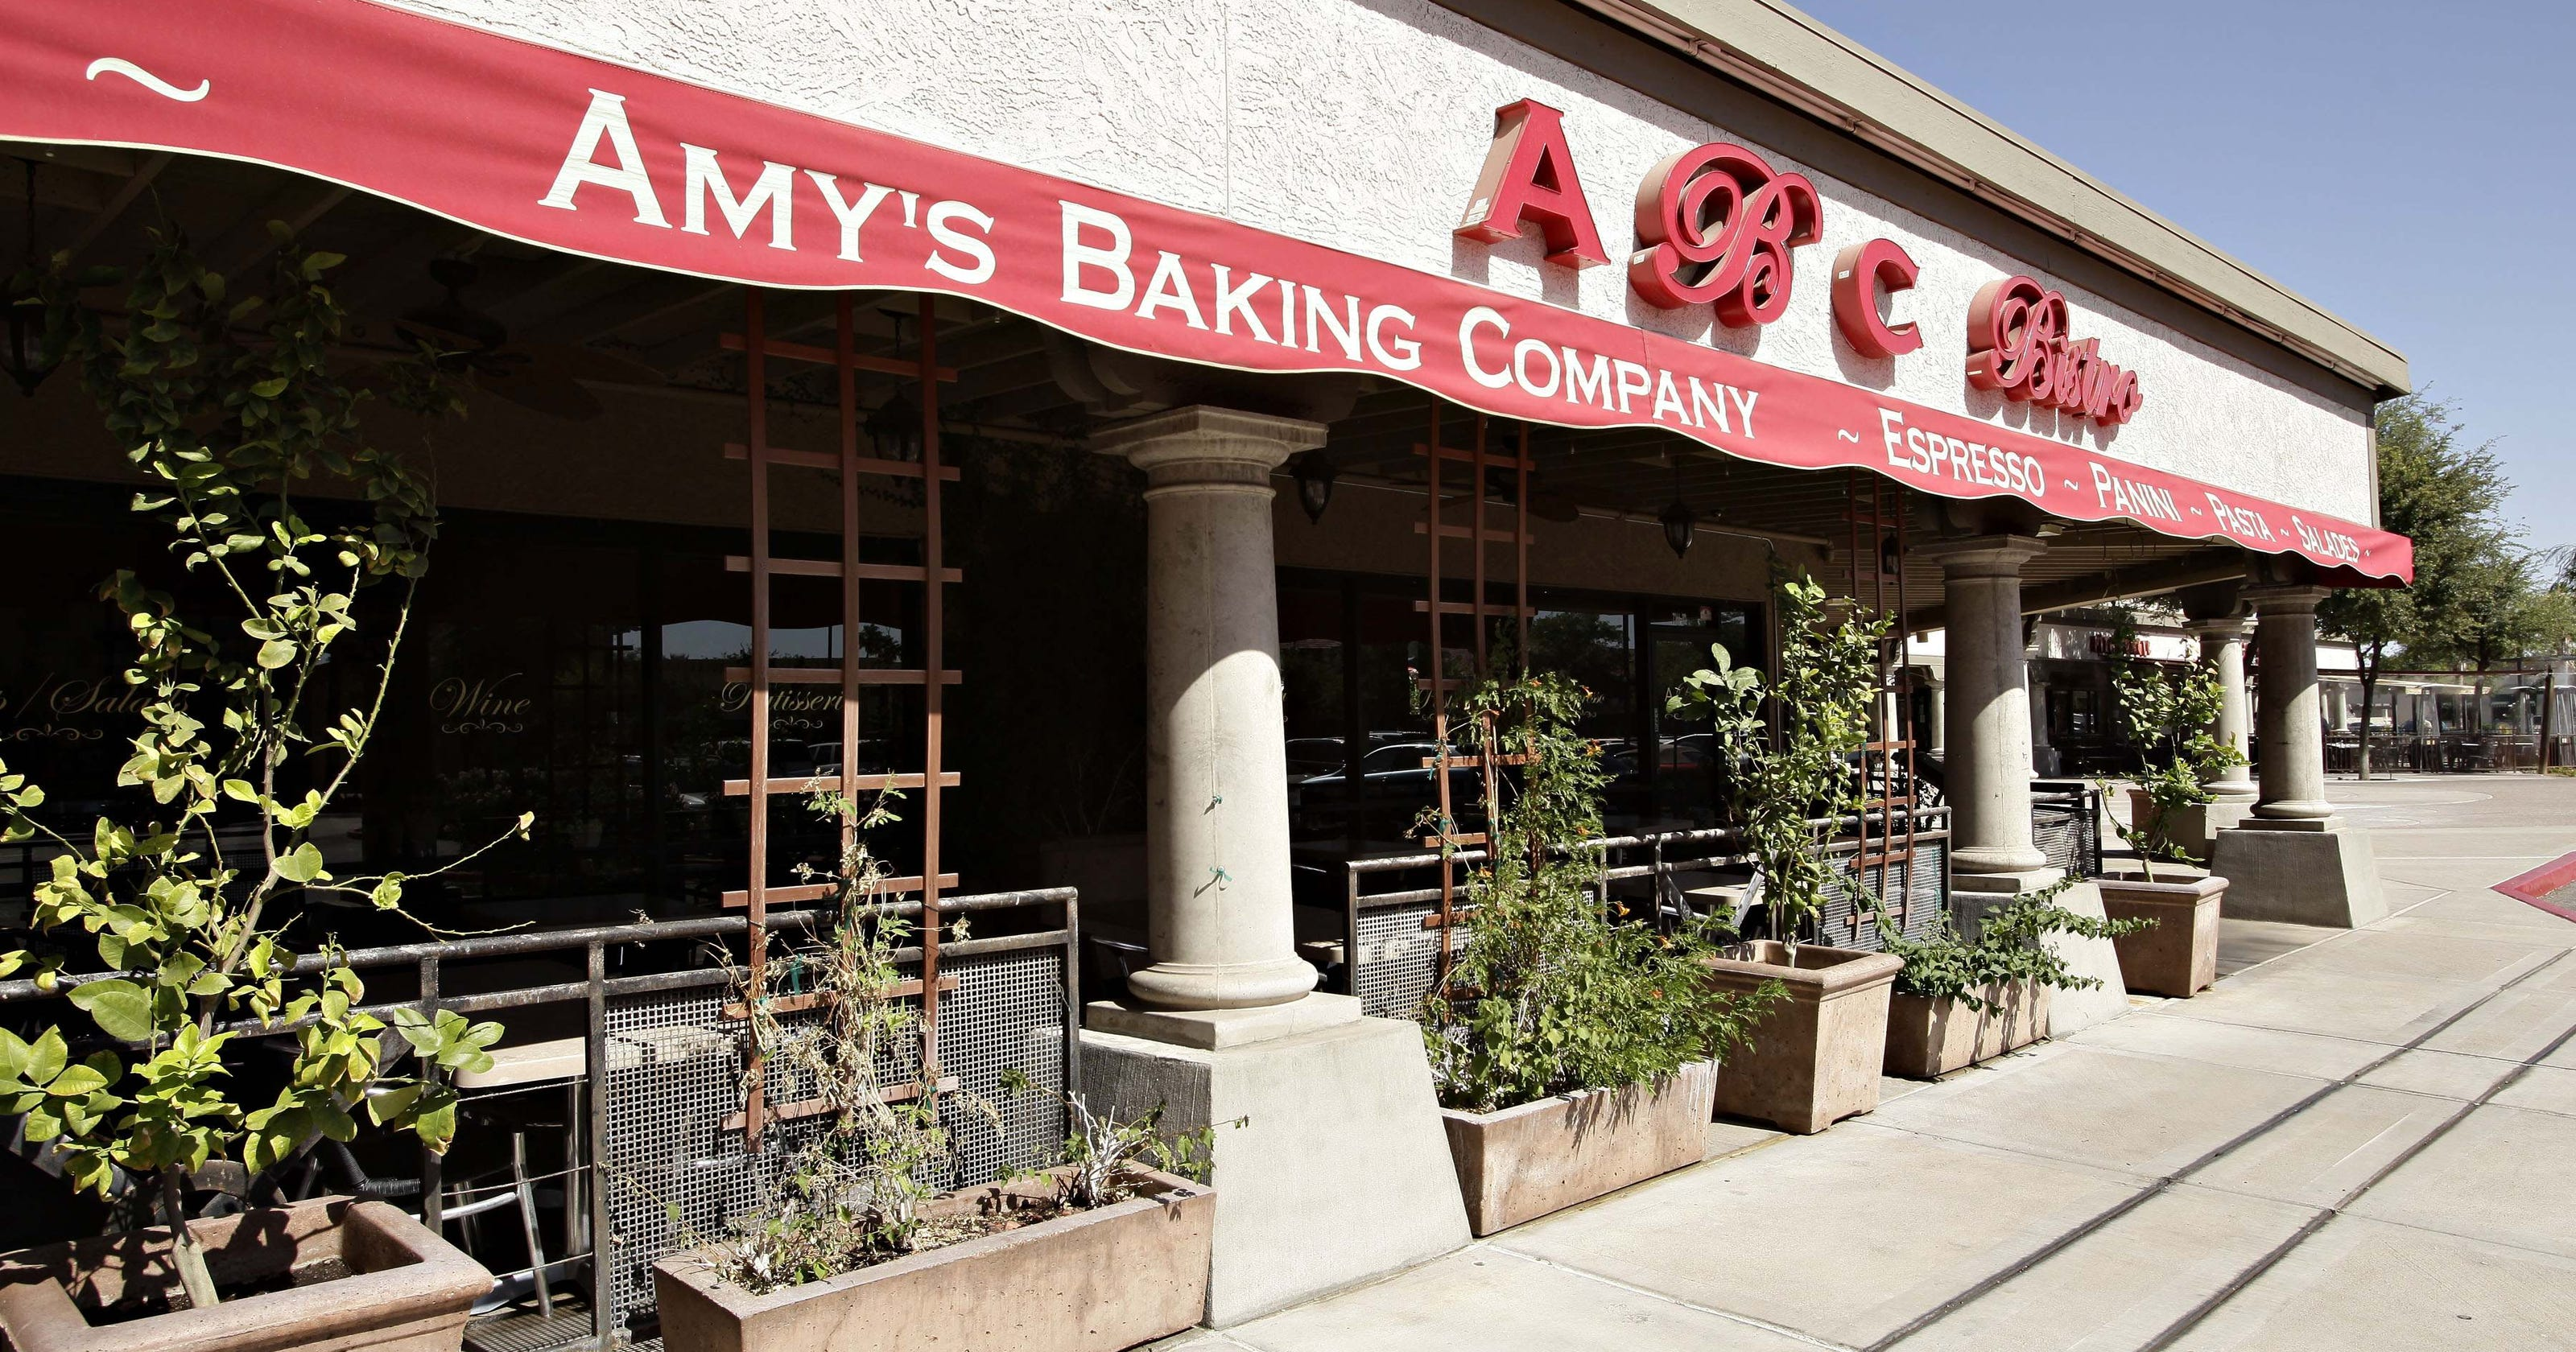 Amy's Baking Company of 'Kitchen